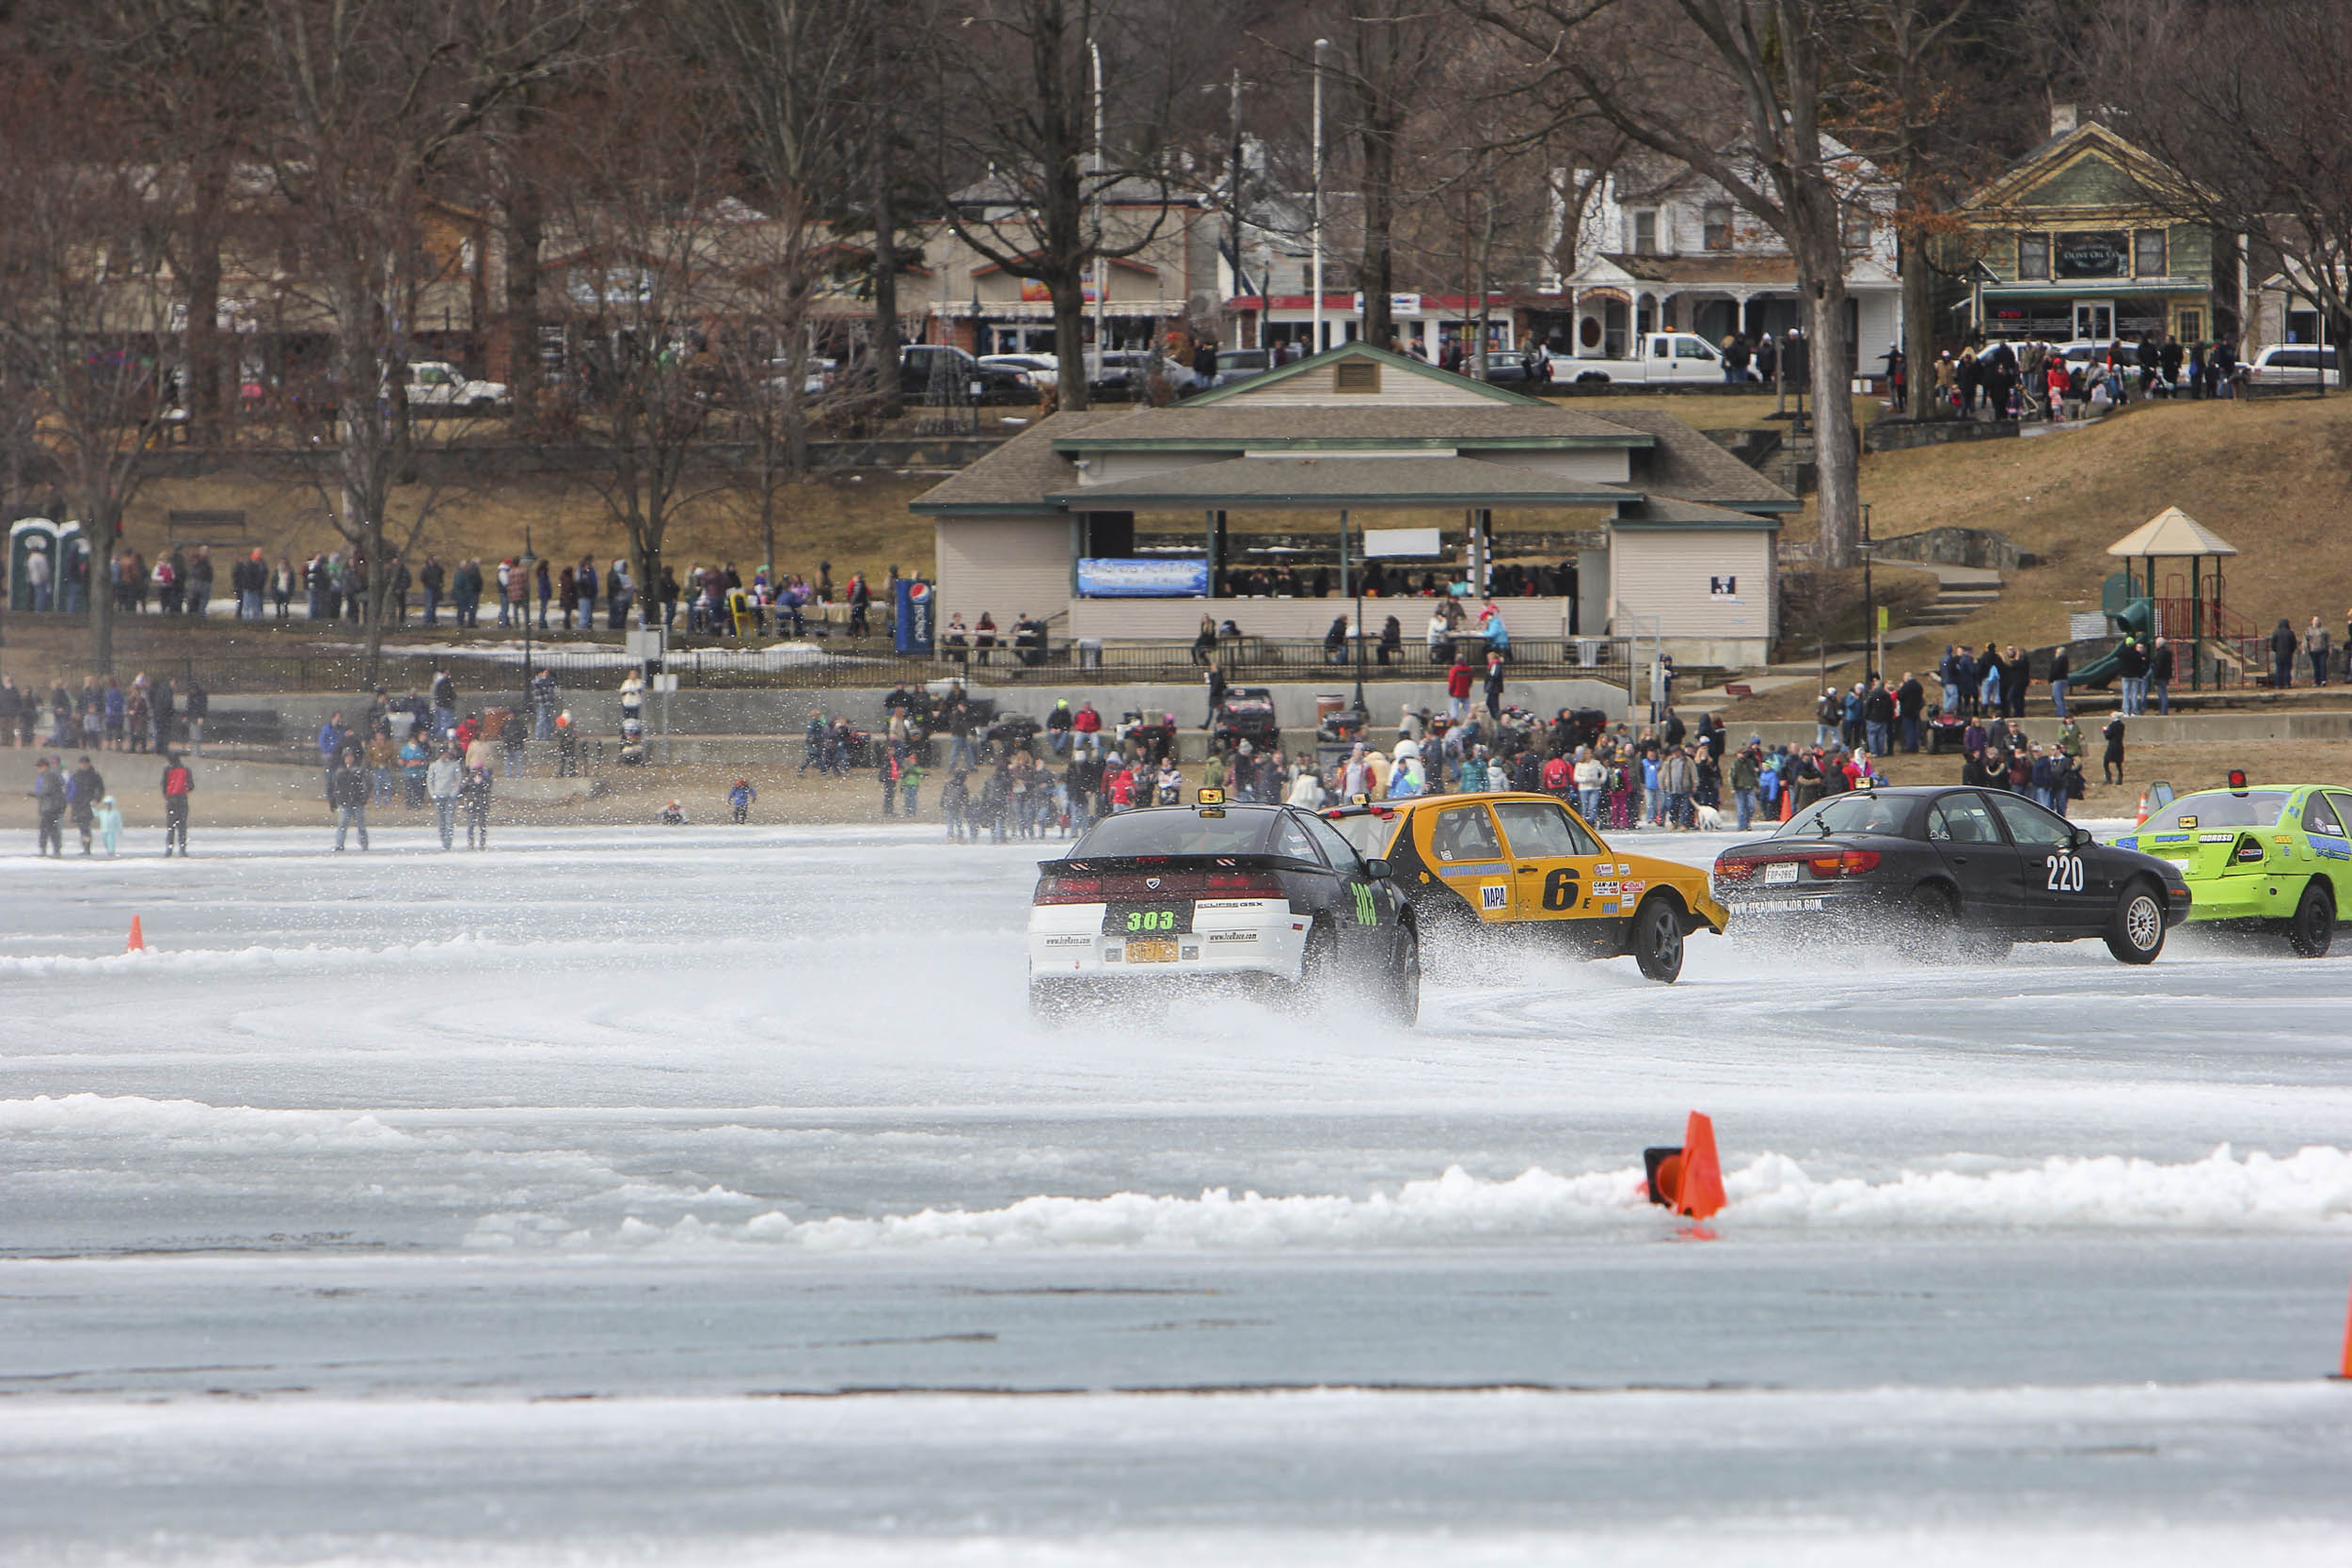 ice racing draws a crowd